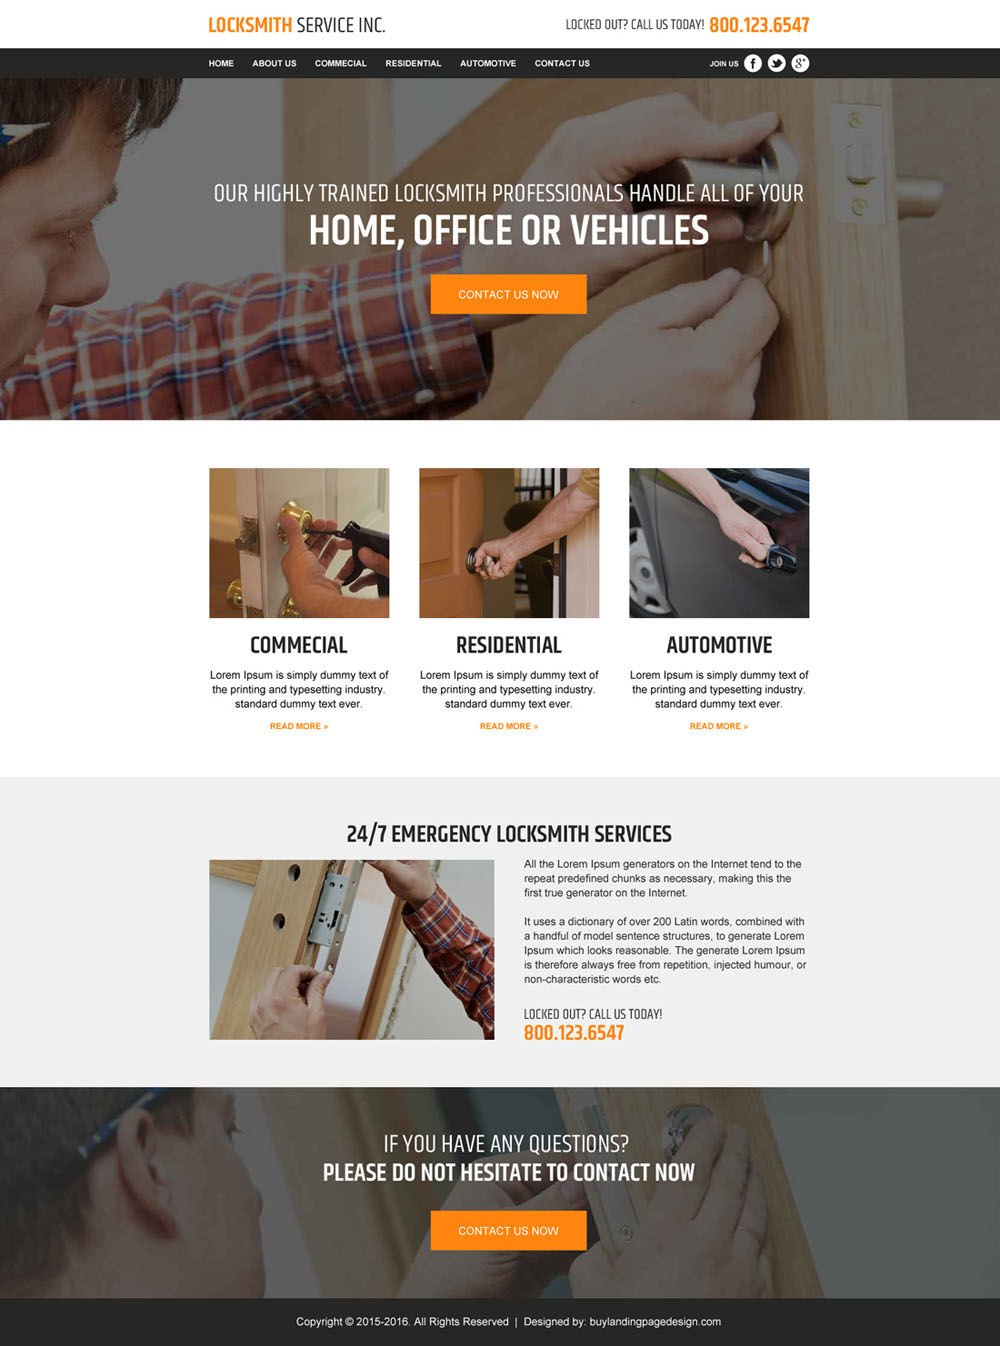 locksmith-service-html-website-template-to-create-locksmith-service-website-001